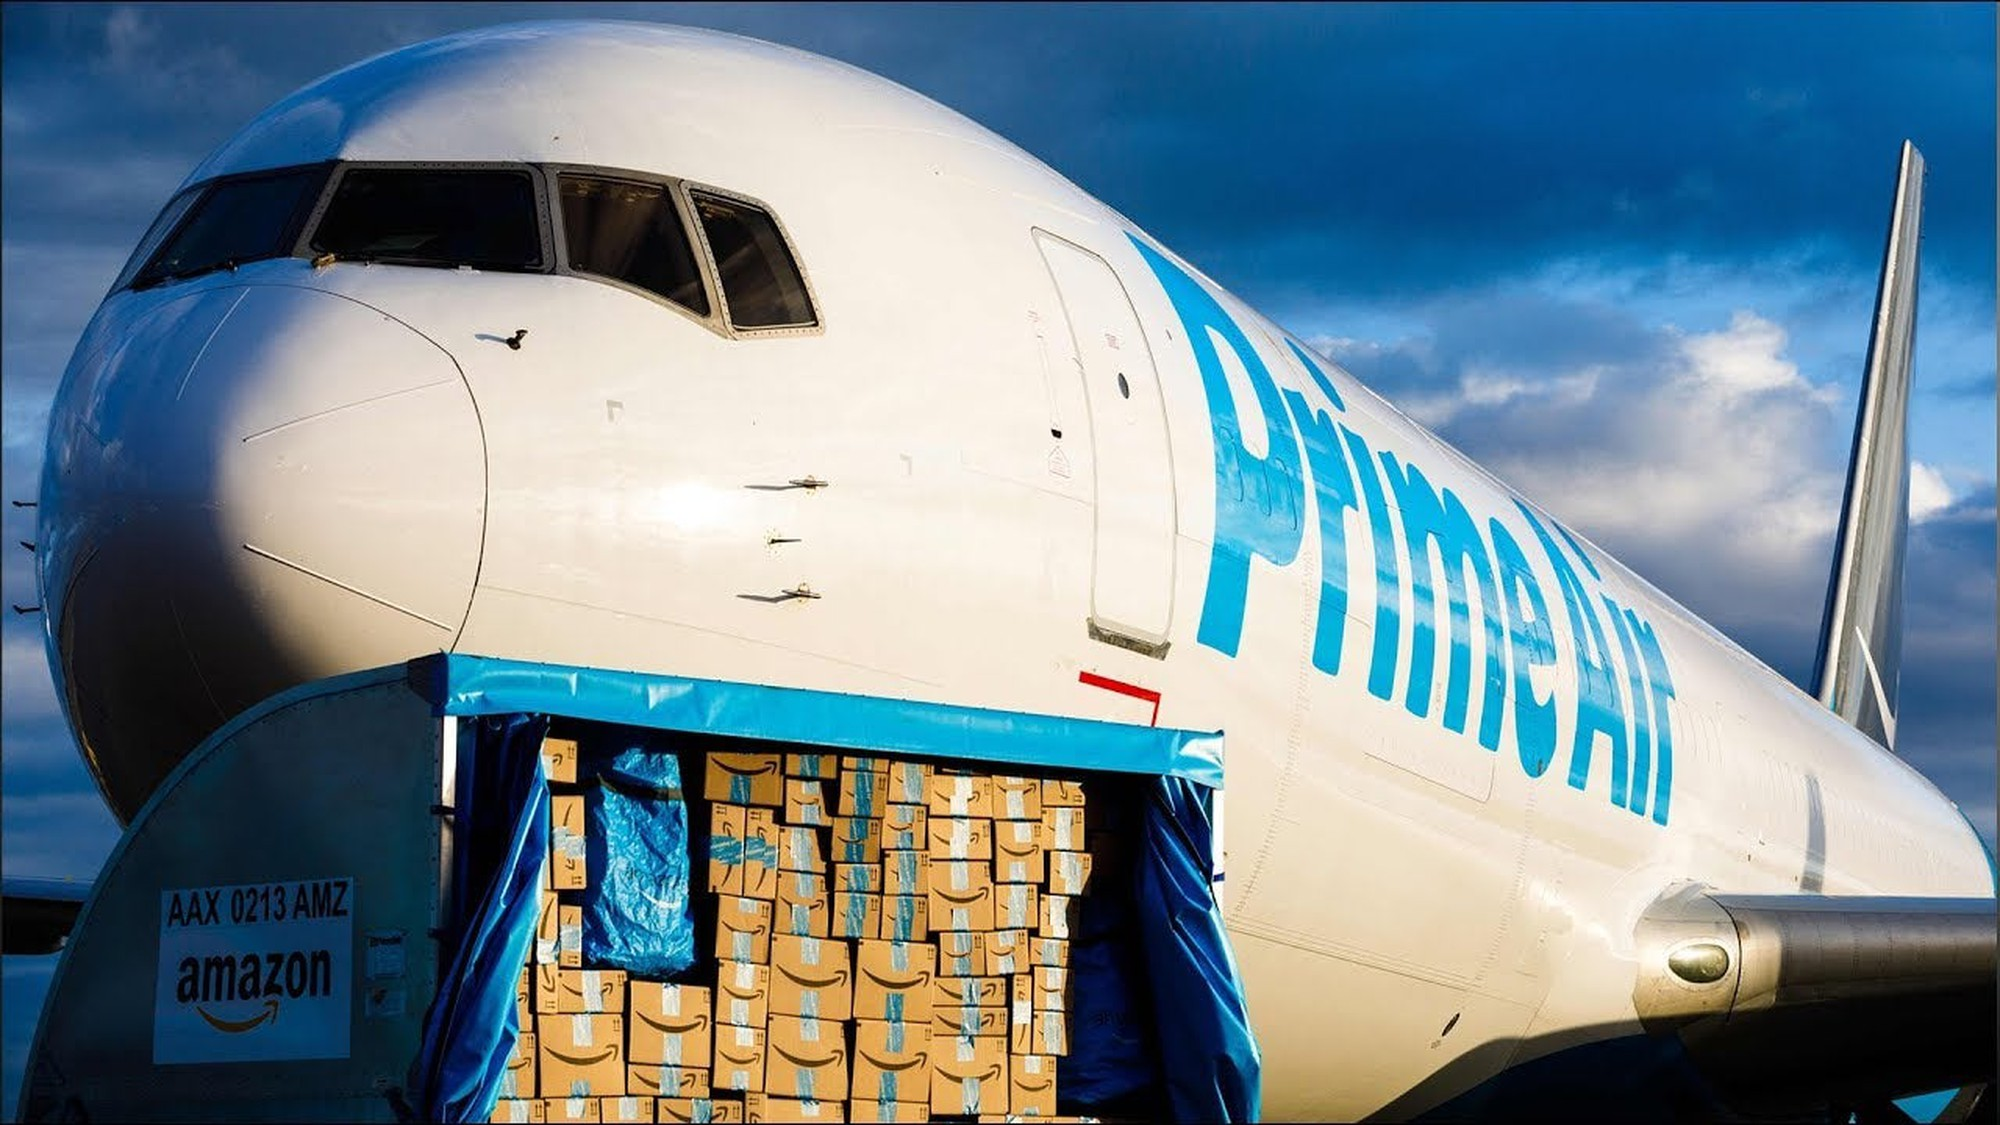 Market Insights: Amazon activity places the spotlight on freighter conversion opportunities